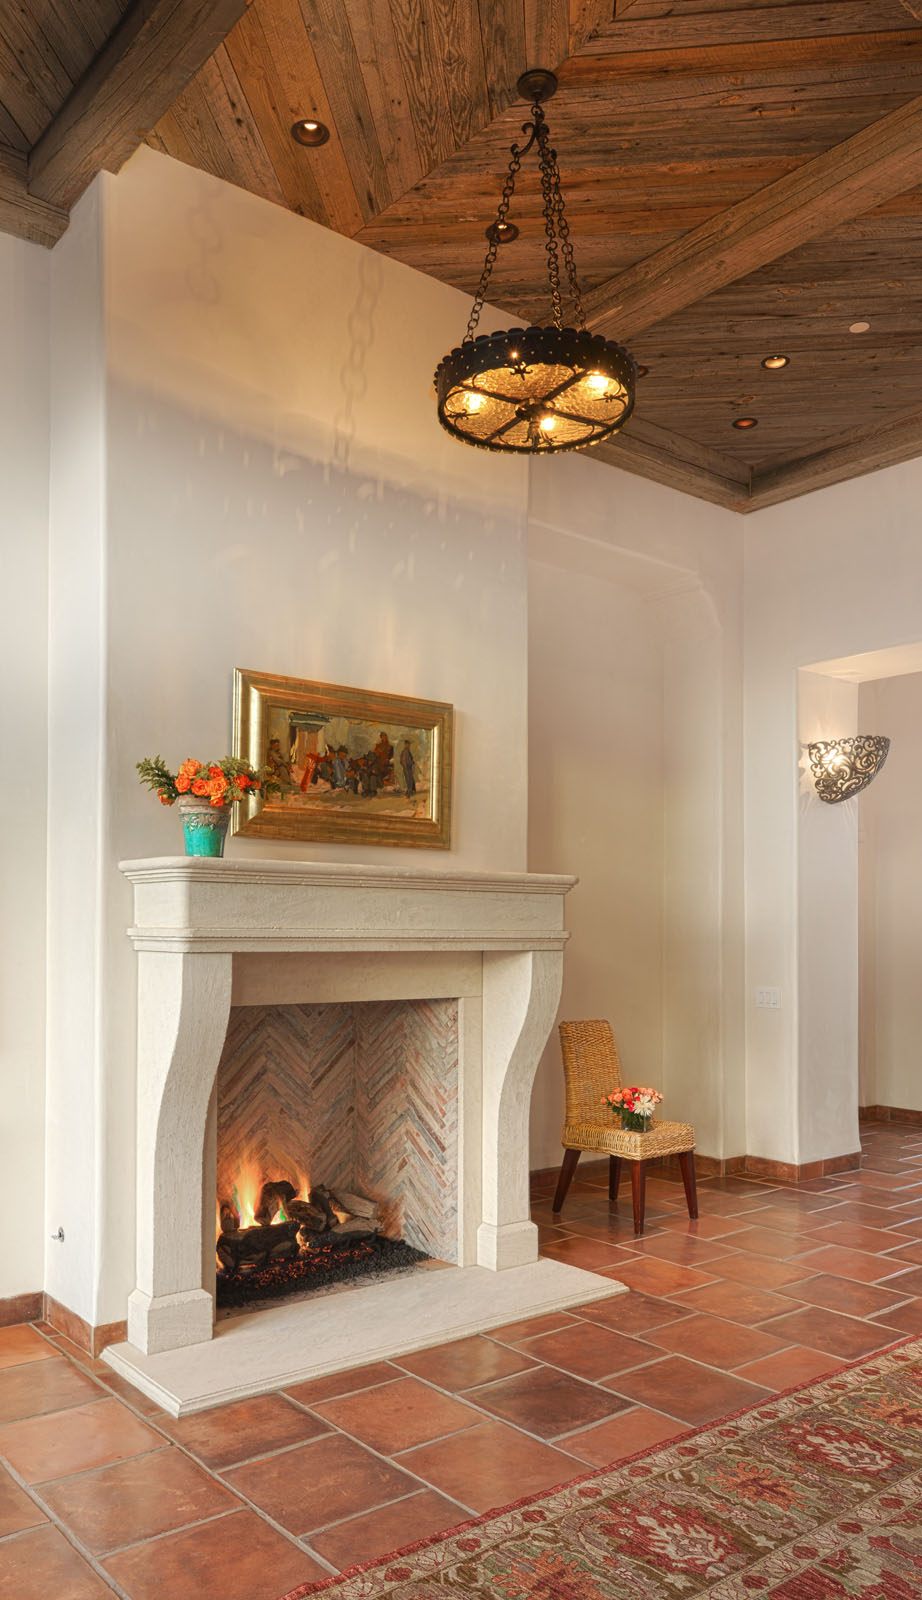 Bertelsen Residence 10 - Living Room Fireplace with cut limestone, sautillo tile and natural wood ceiling.jpg